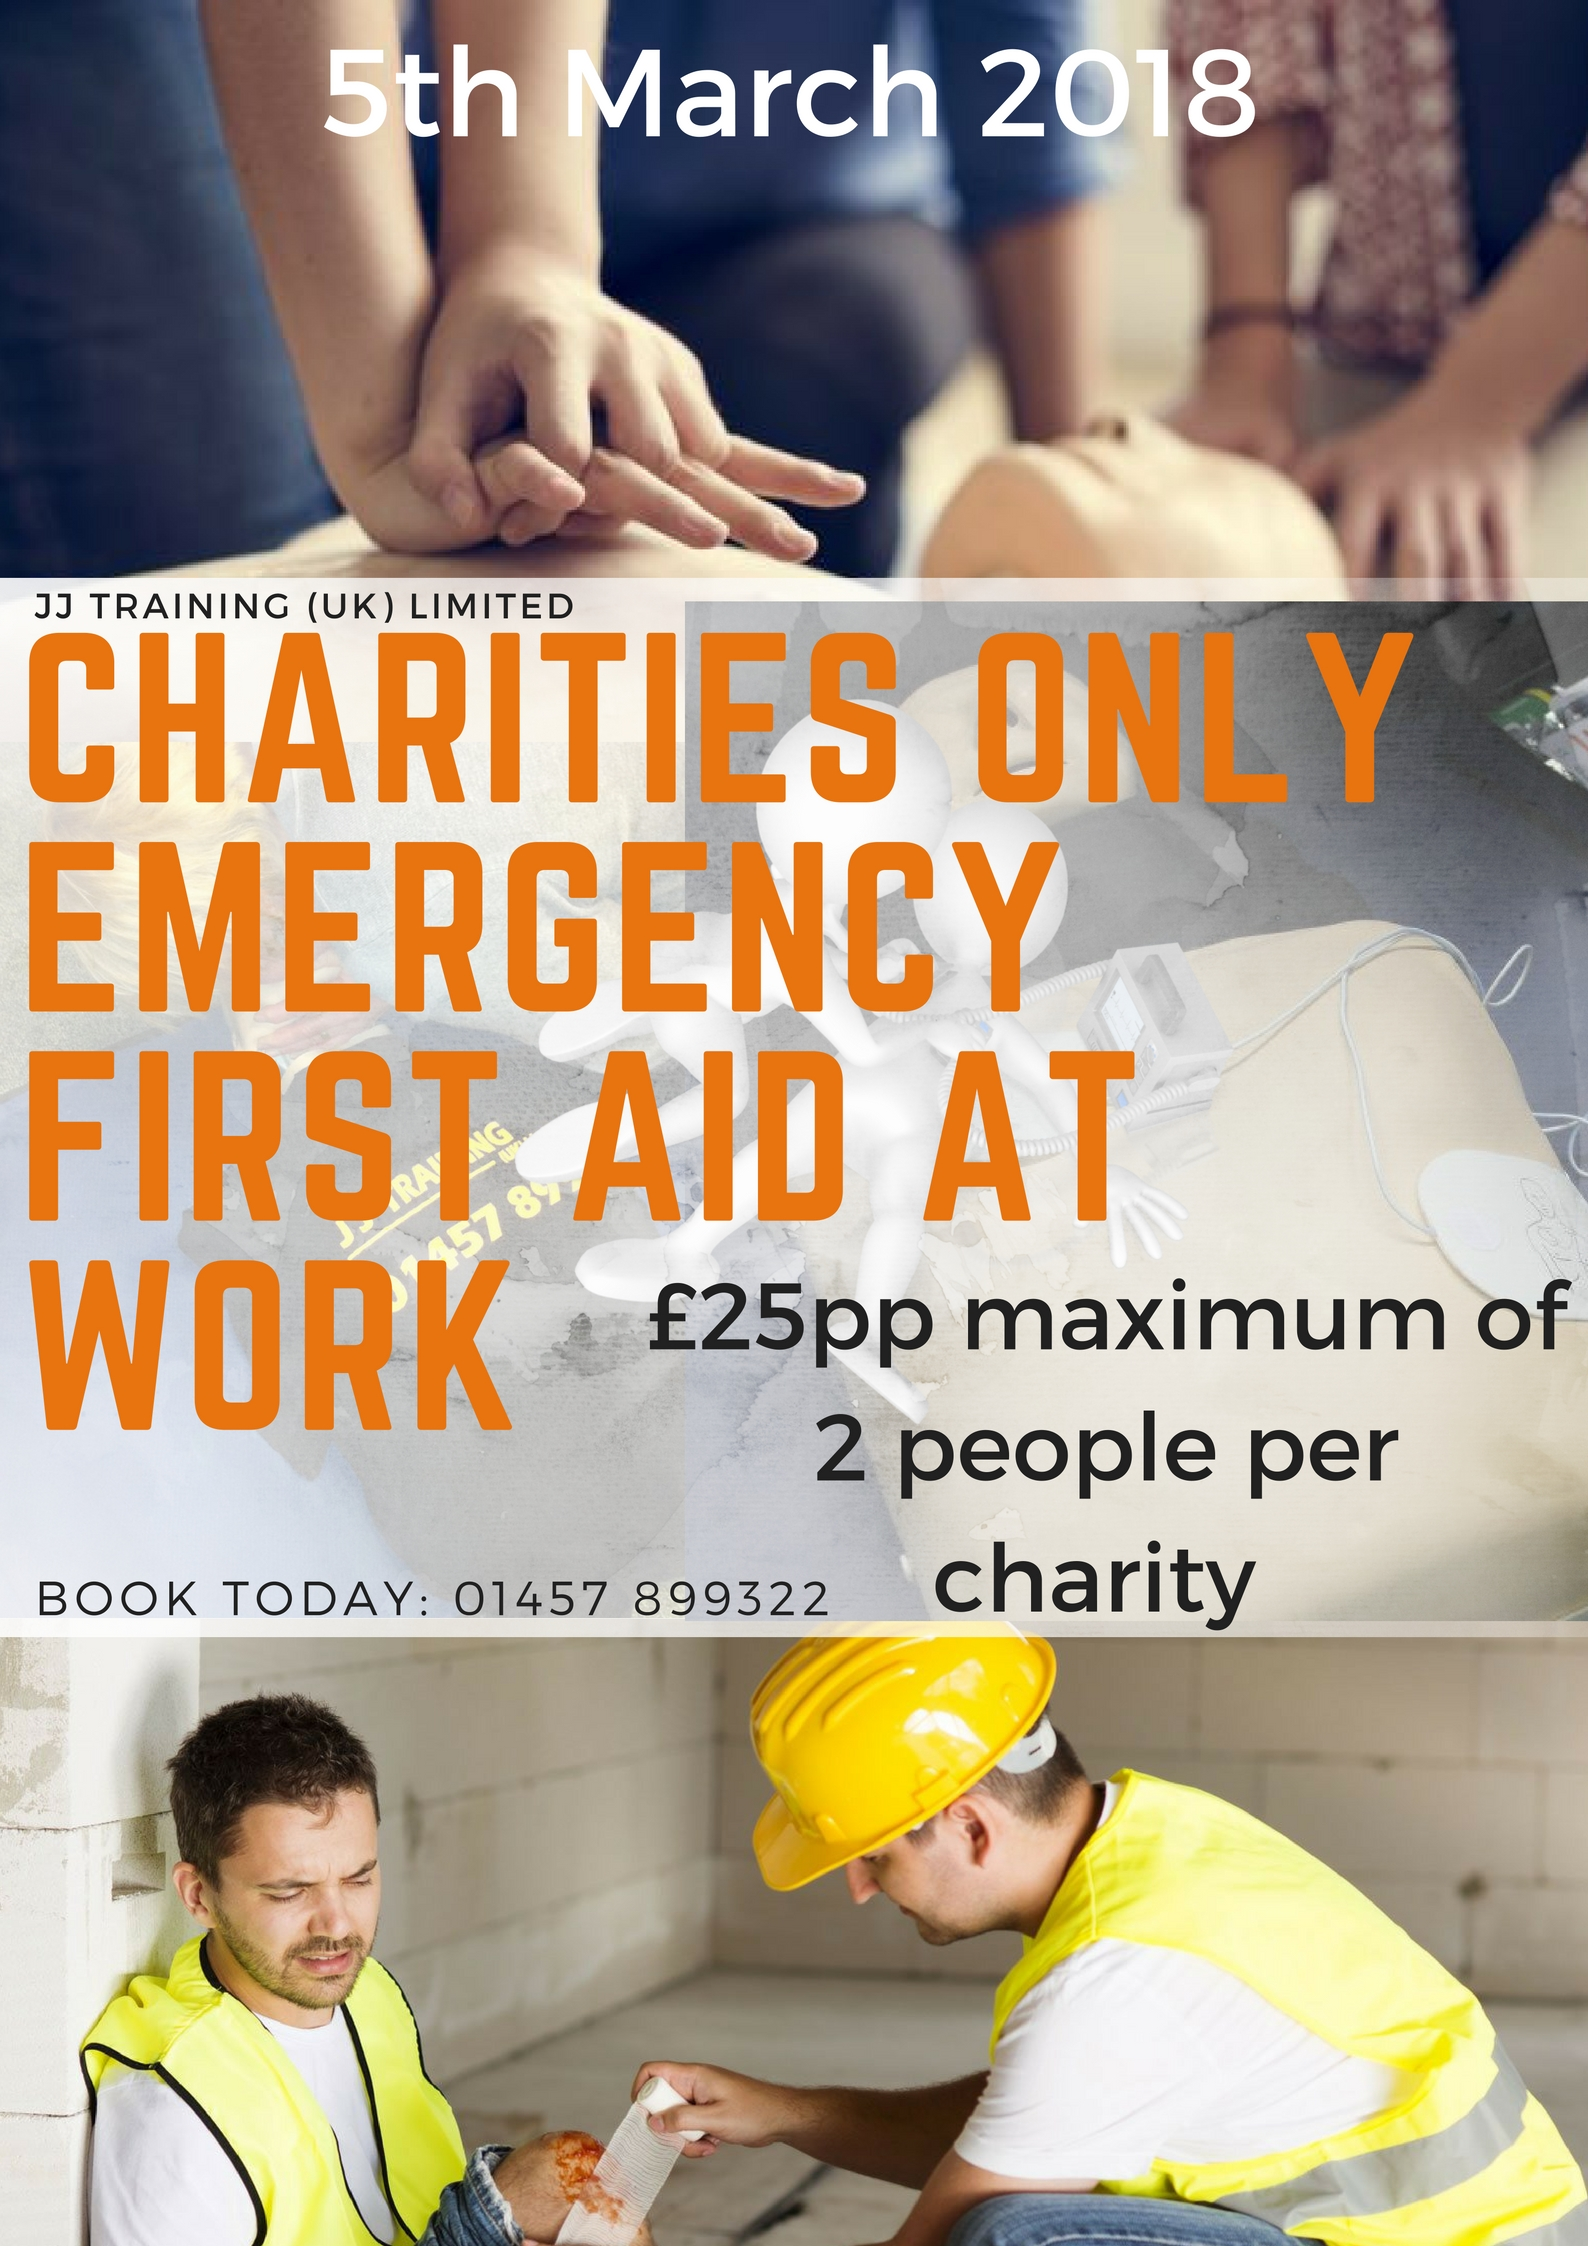 Local Charities Only First Aid Course